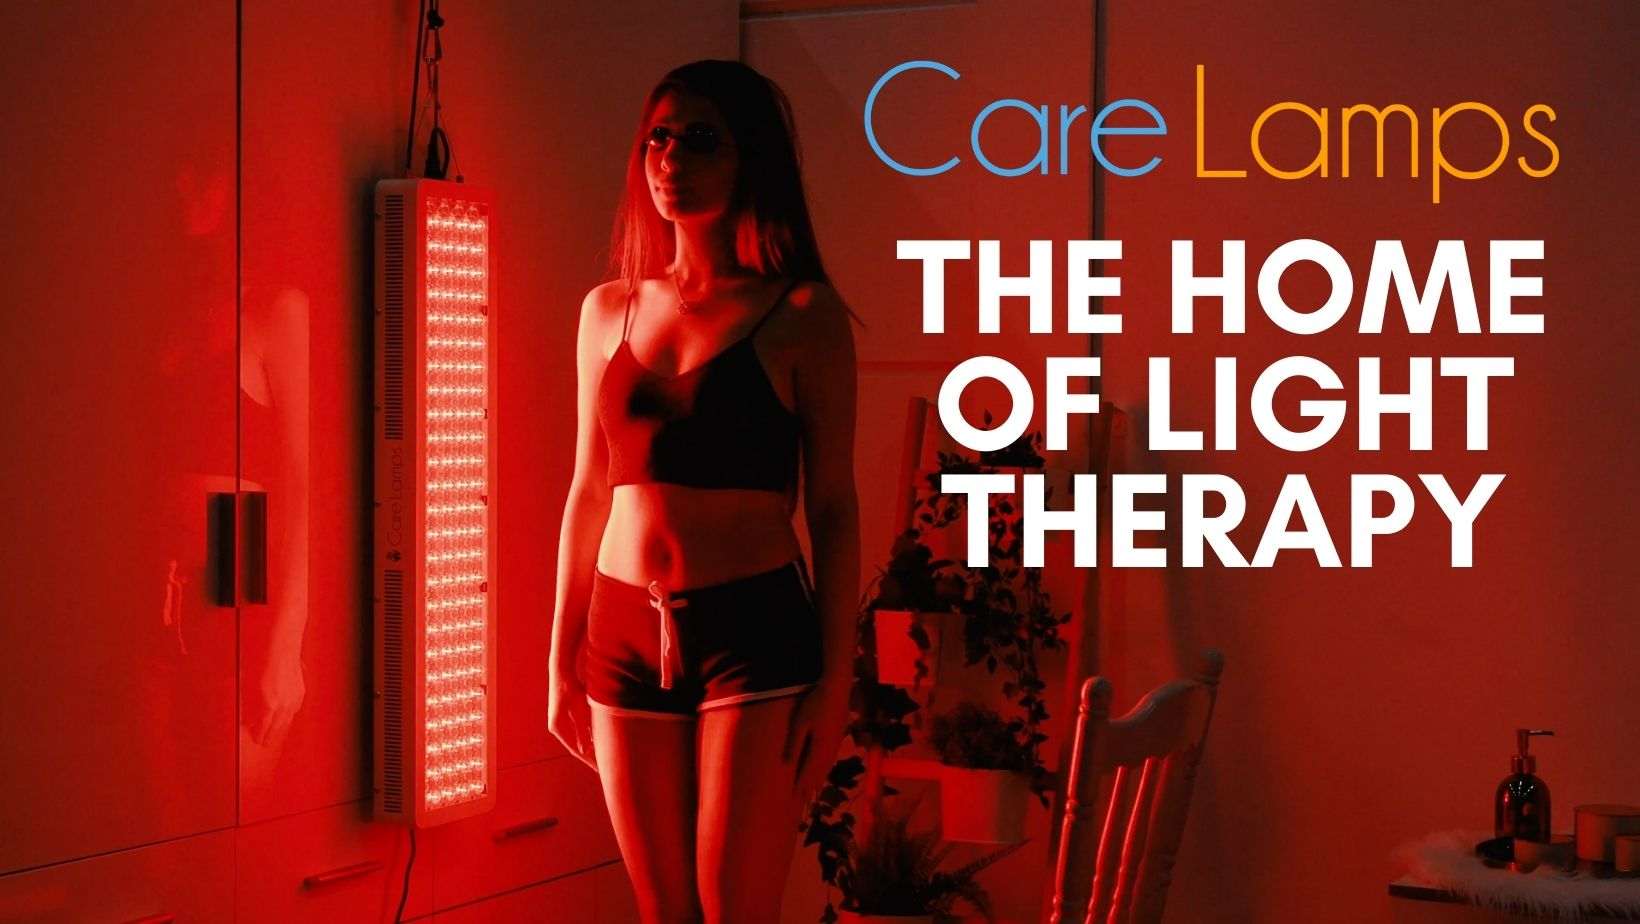 Care Lamps the home of light therapy